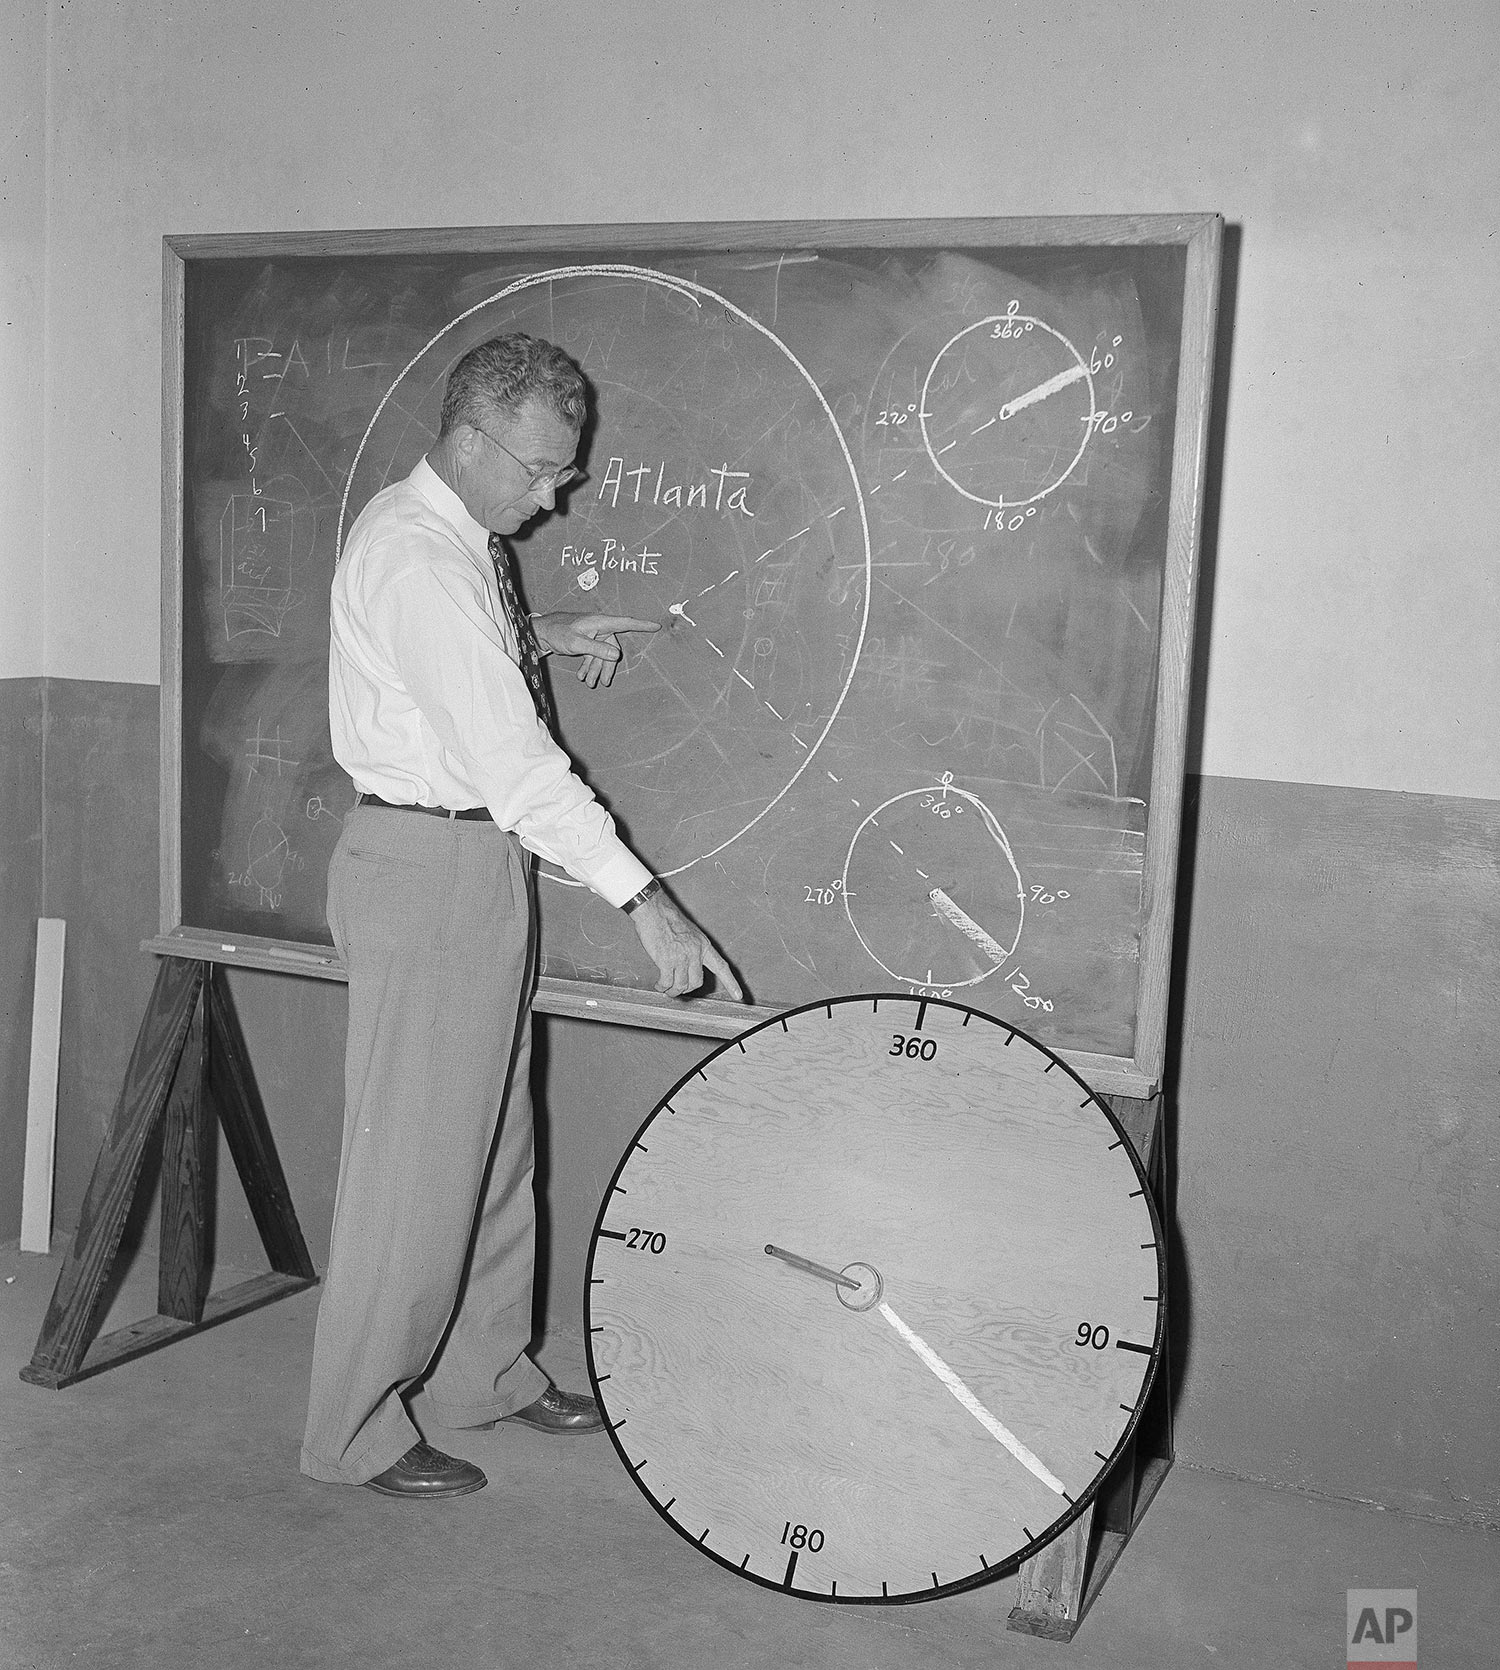 """Civil Defense director George M. Phillips of the Atlanta, Ga., area, illustrates he use of a """"flash dial"""", a simple wooden disc, 36 inches in diameter, created to spot the heart of any atomic explosion within a matter of minutes, in Atlanta, June 16, 1951. The disc has a center pole which casts a """"shadow"""" when heat waves from an atomic blast sear the surface of the wood. (AP Photo/Horace Cort)"""